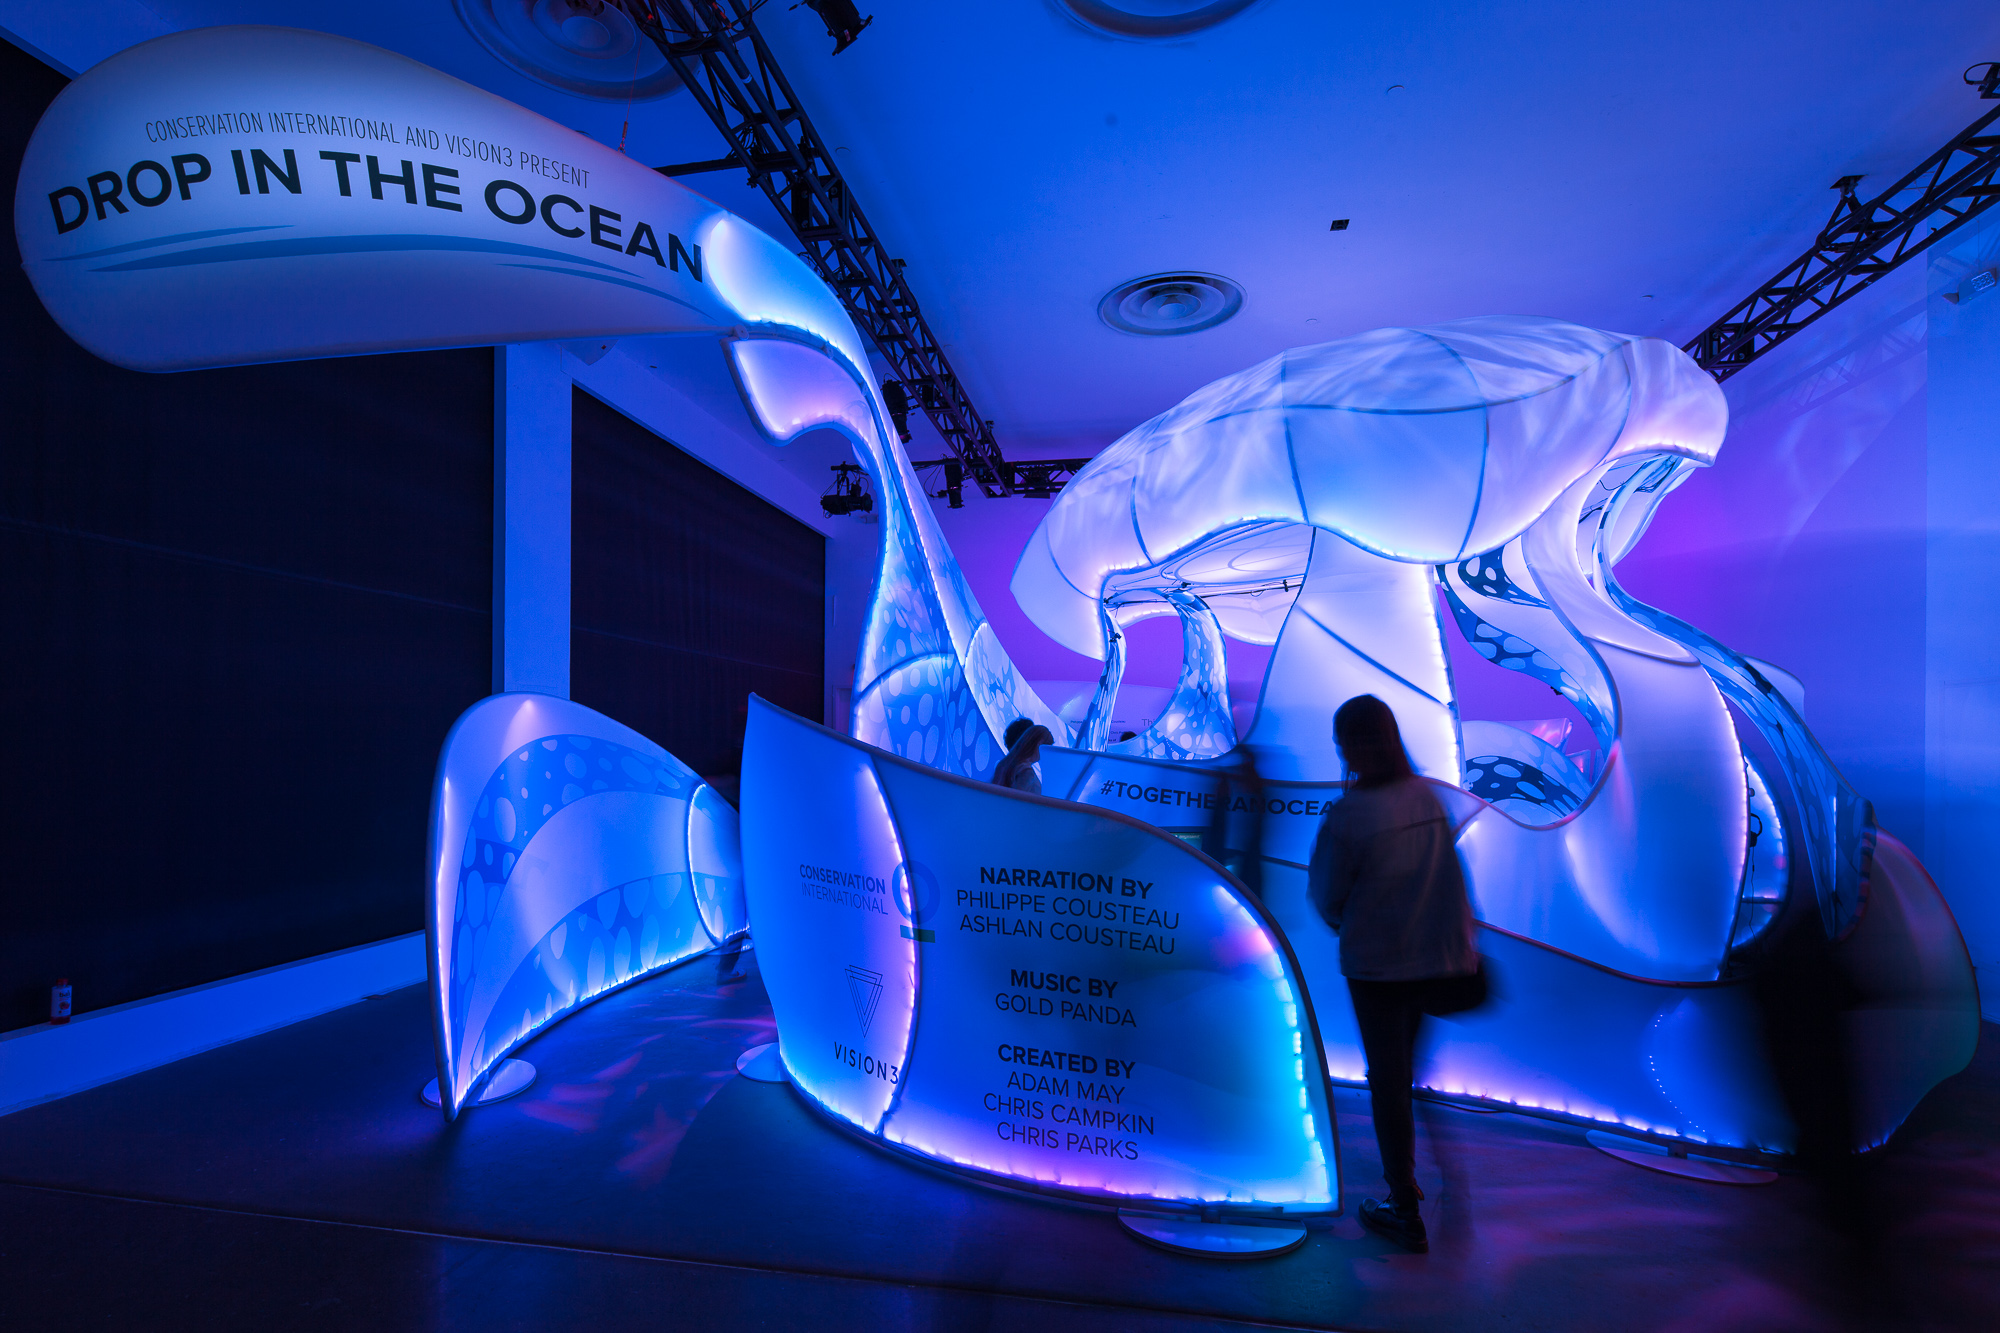 """The Drop in the Ocean """"Jellyfish"""" received an Award of Excellence"""